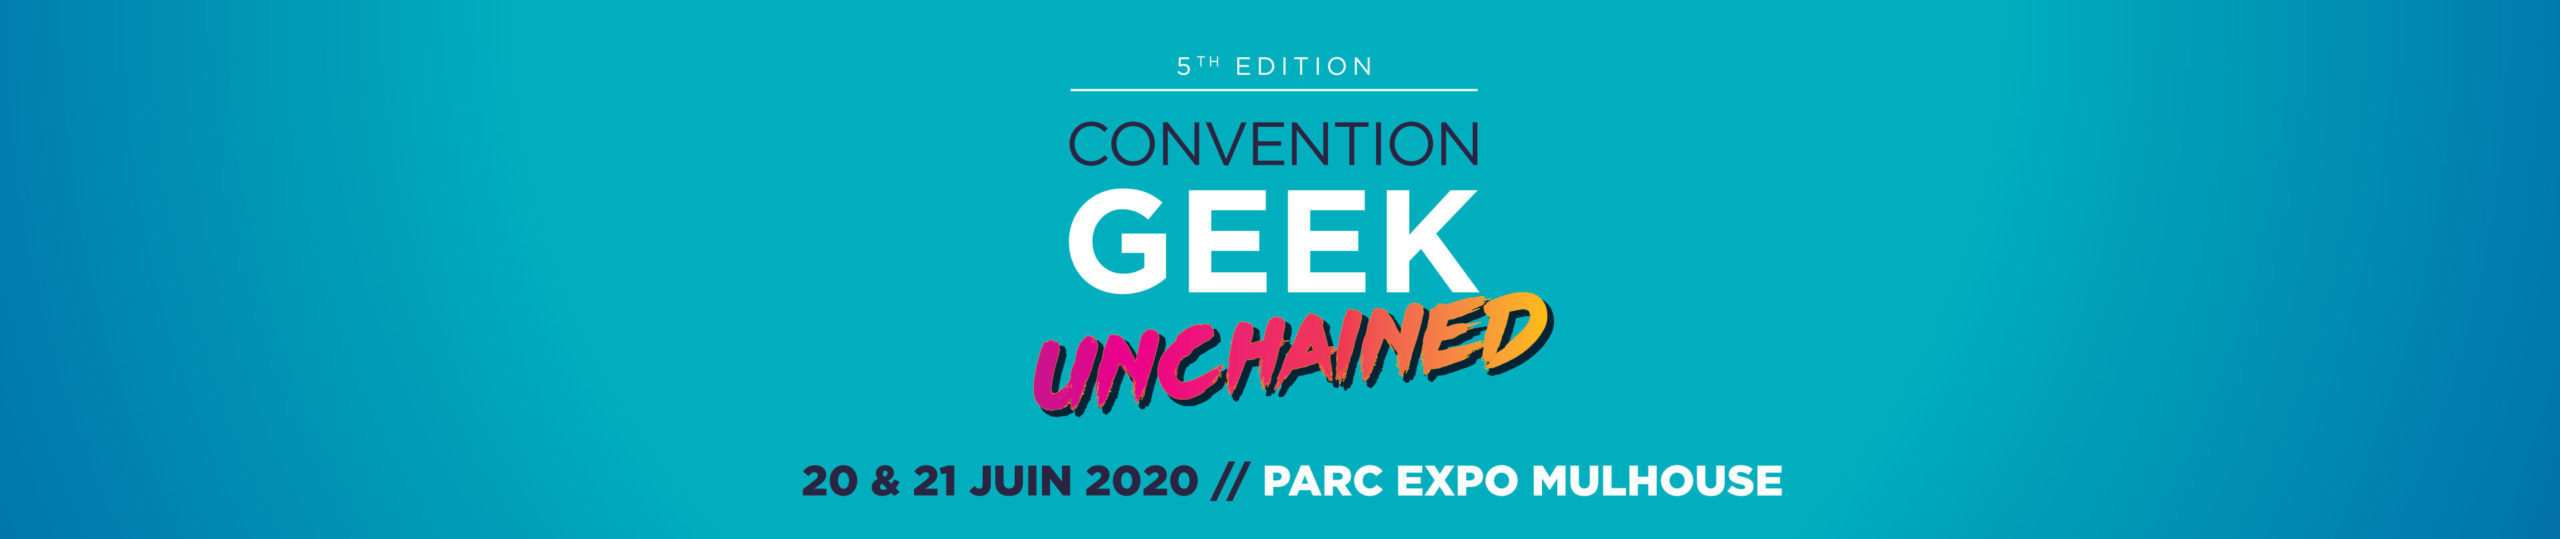 Convention Geek Unchained 5 - Parc Expo Mulhouse - 20-21 juin 2020